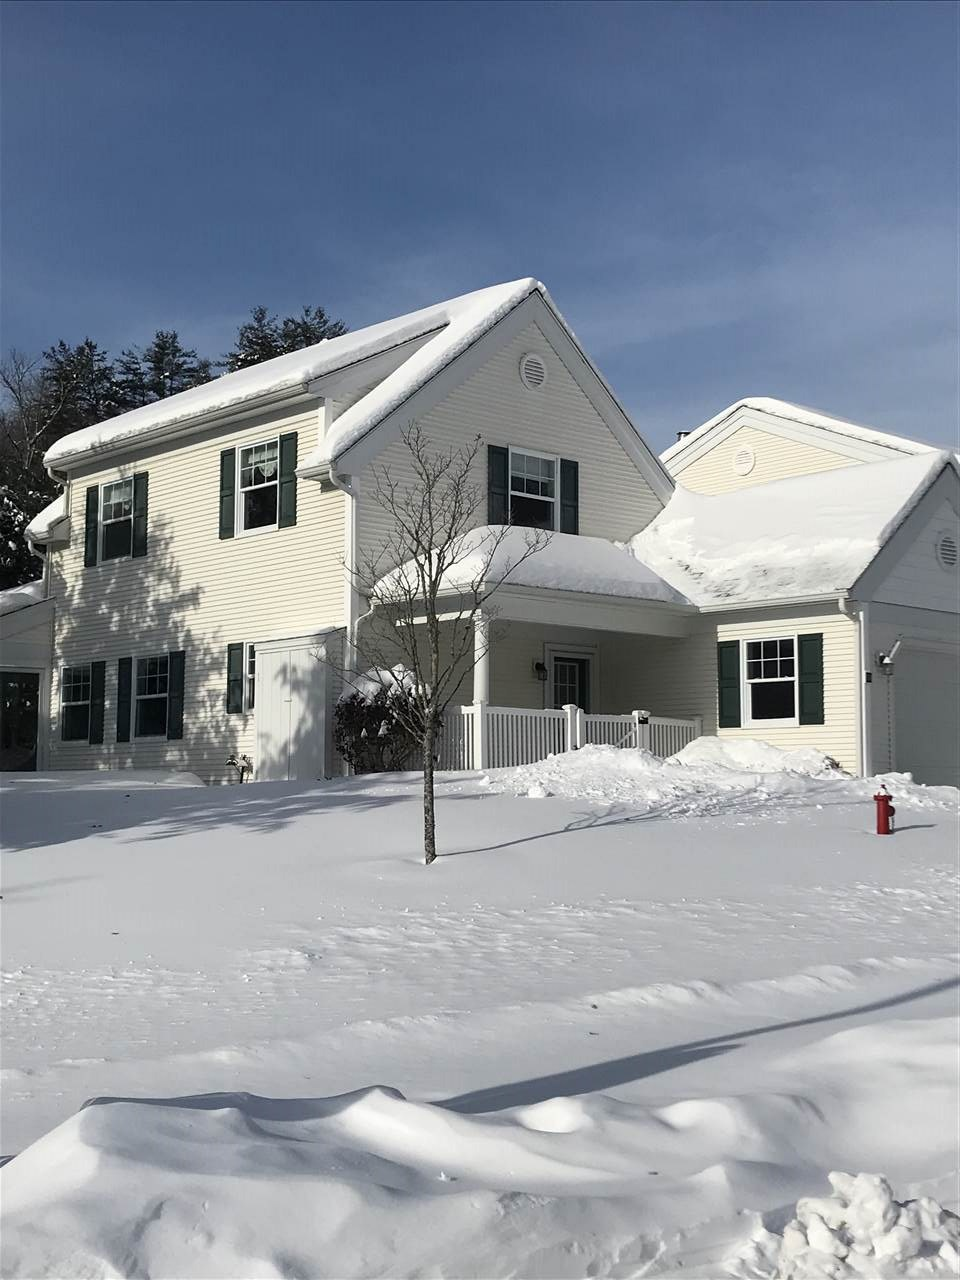 LEBANON NH Condo for sale $$285,000 | $171 per sq.ft.